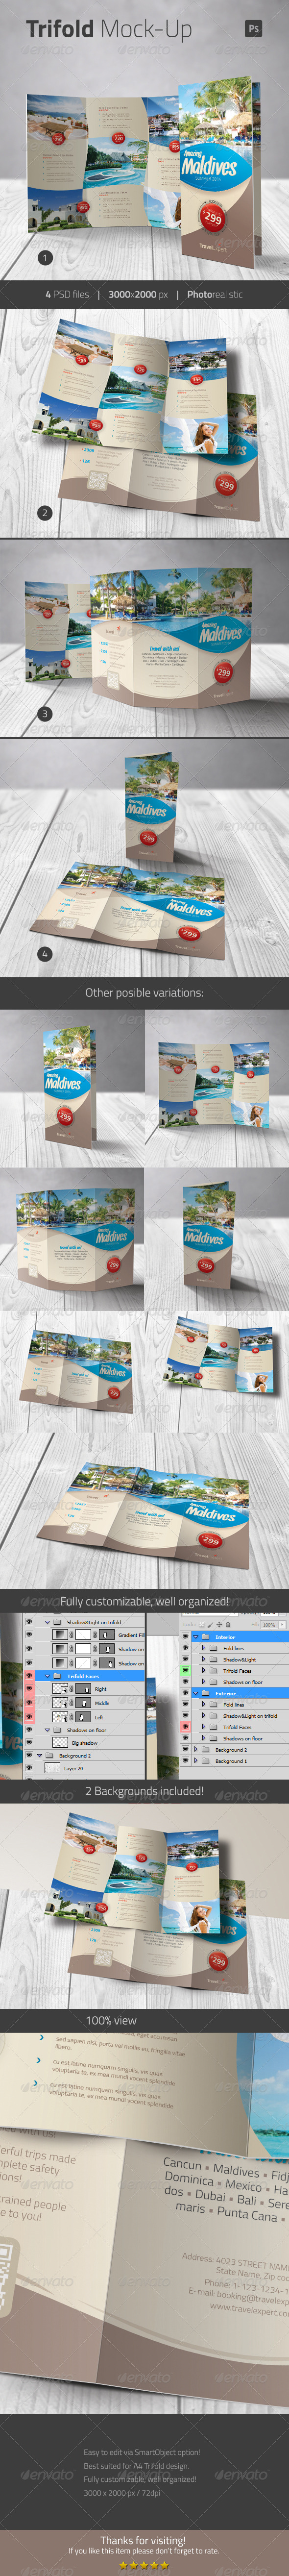 GraphicRiver Trifold Mock-up 7807684